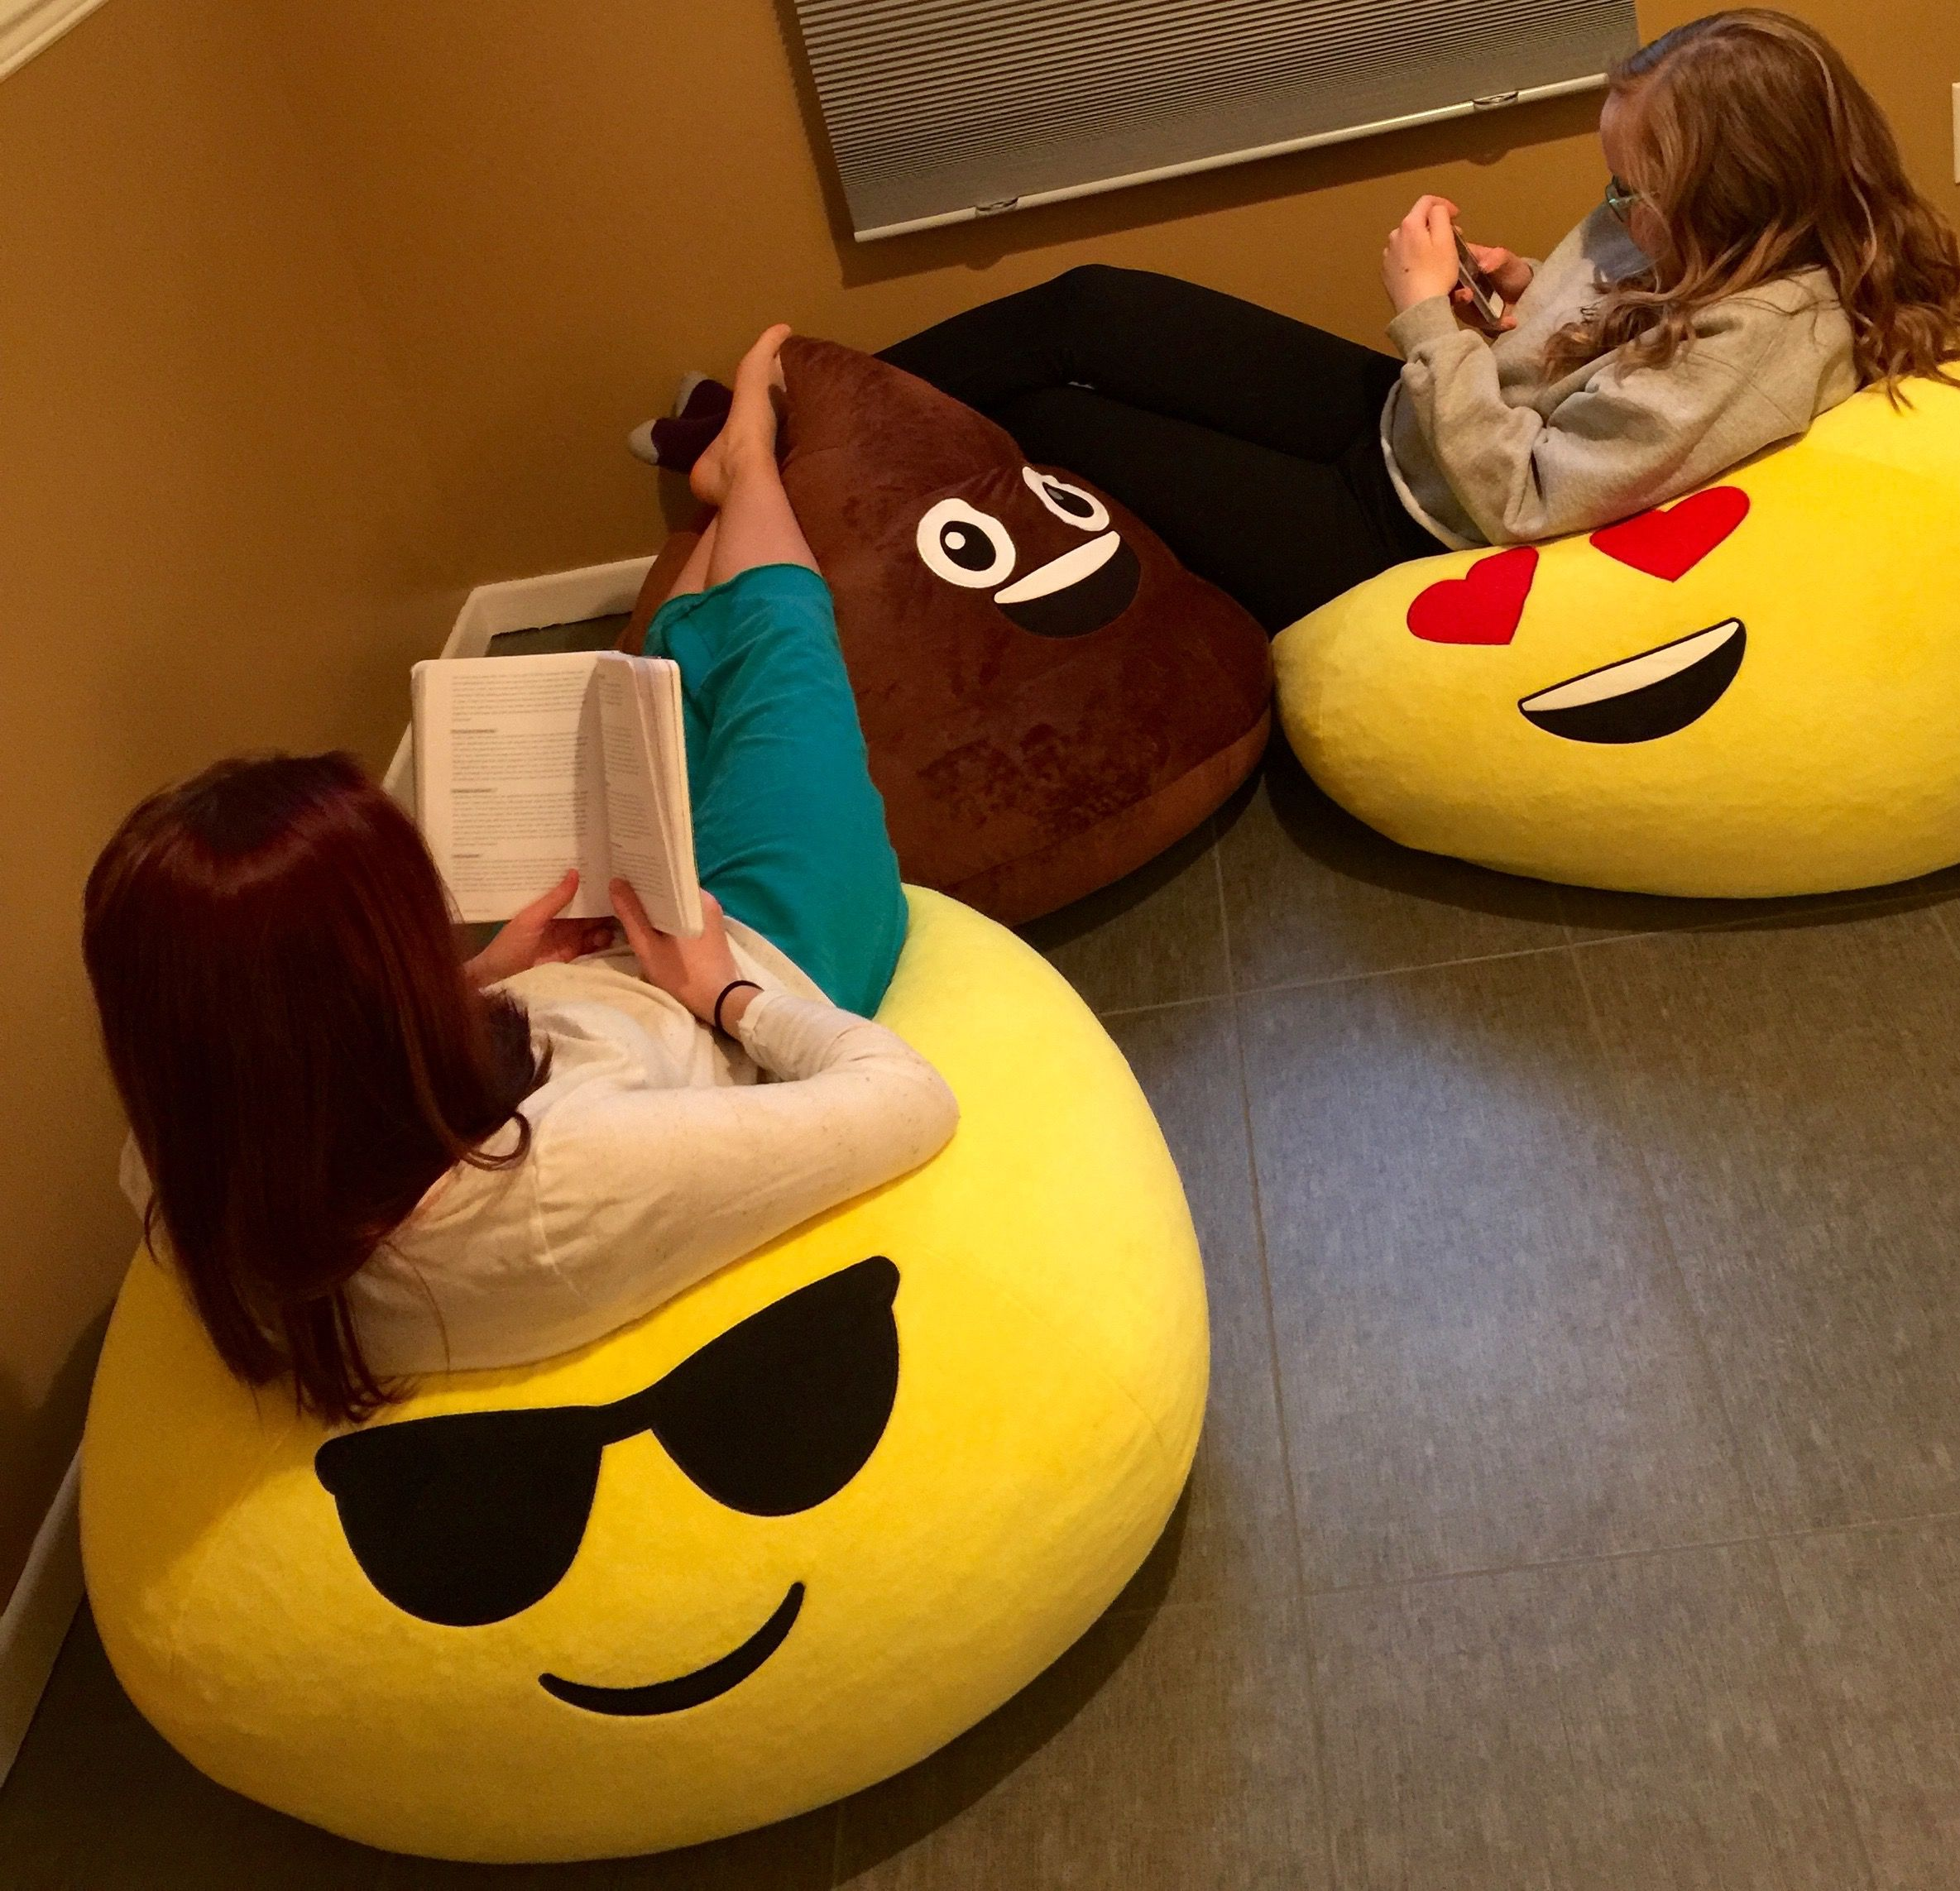 Sitting In Style Gomoji Bean Bags Are The Most Fun Way To Relax Fun Chair Http Bit Ly 1sl9vtl Bean Bag Bean Bag Chair Fashion Bags